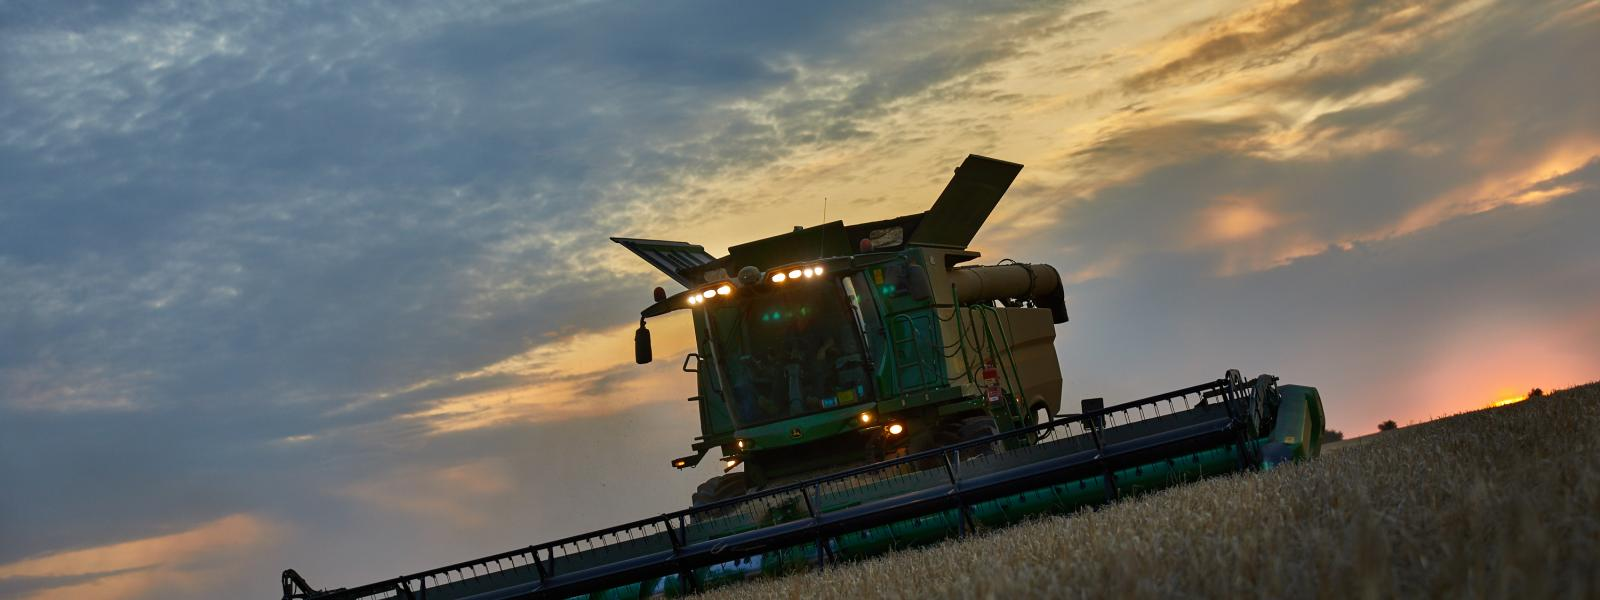 Combine at Night - August 2017